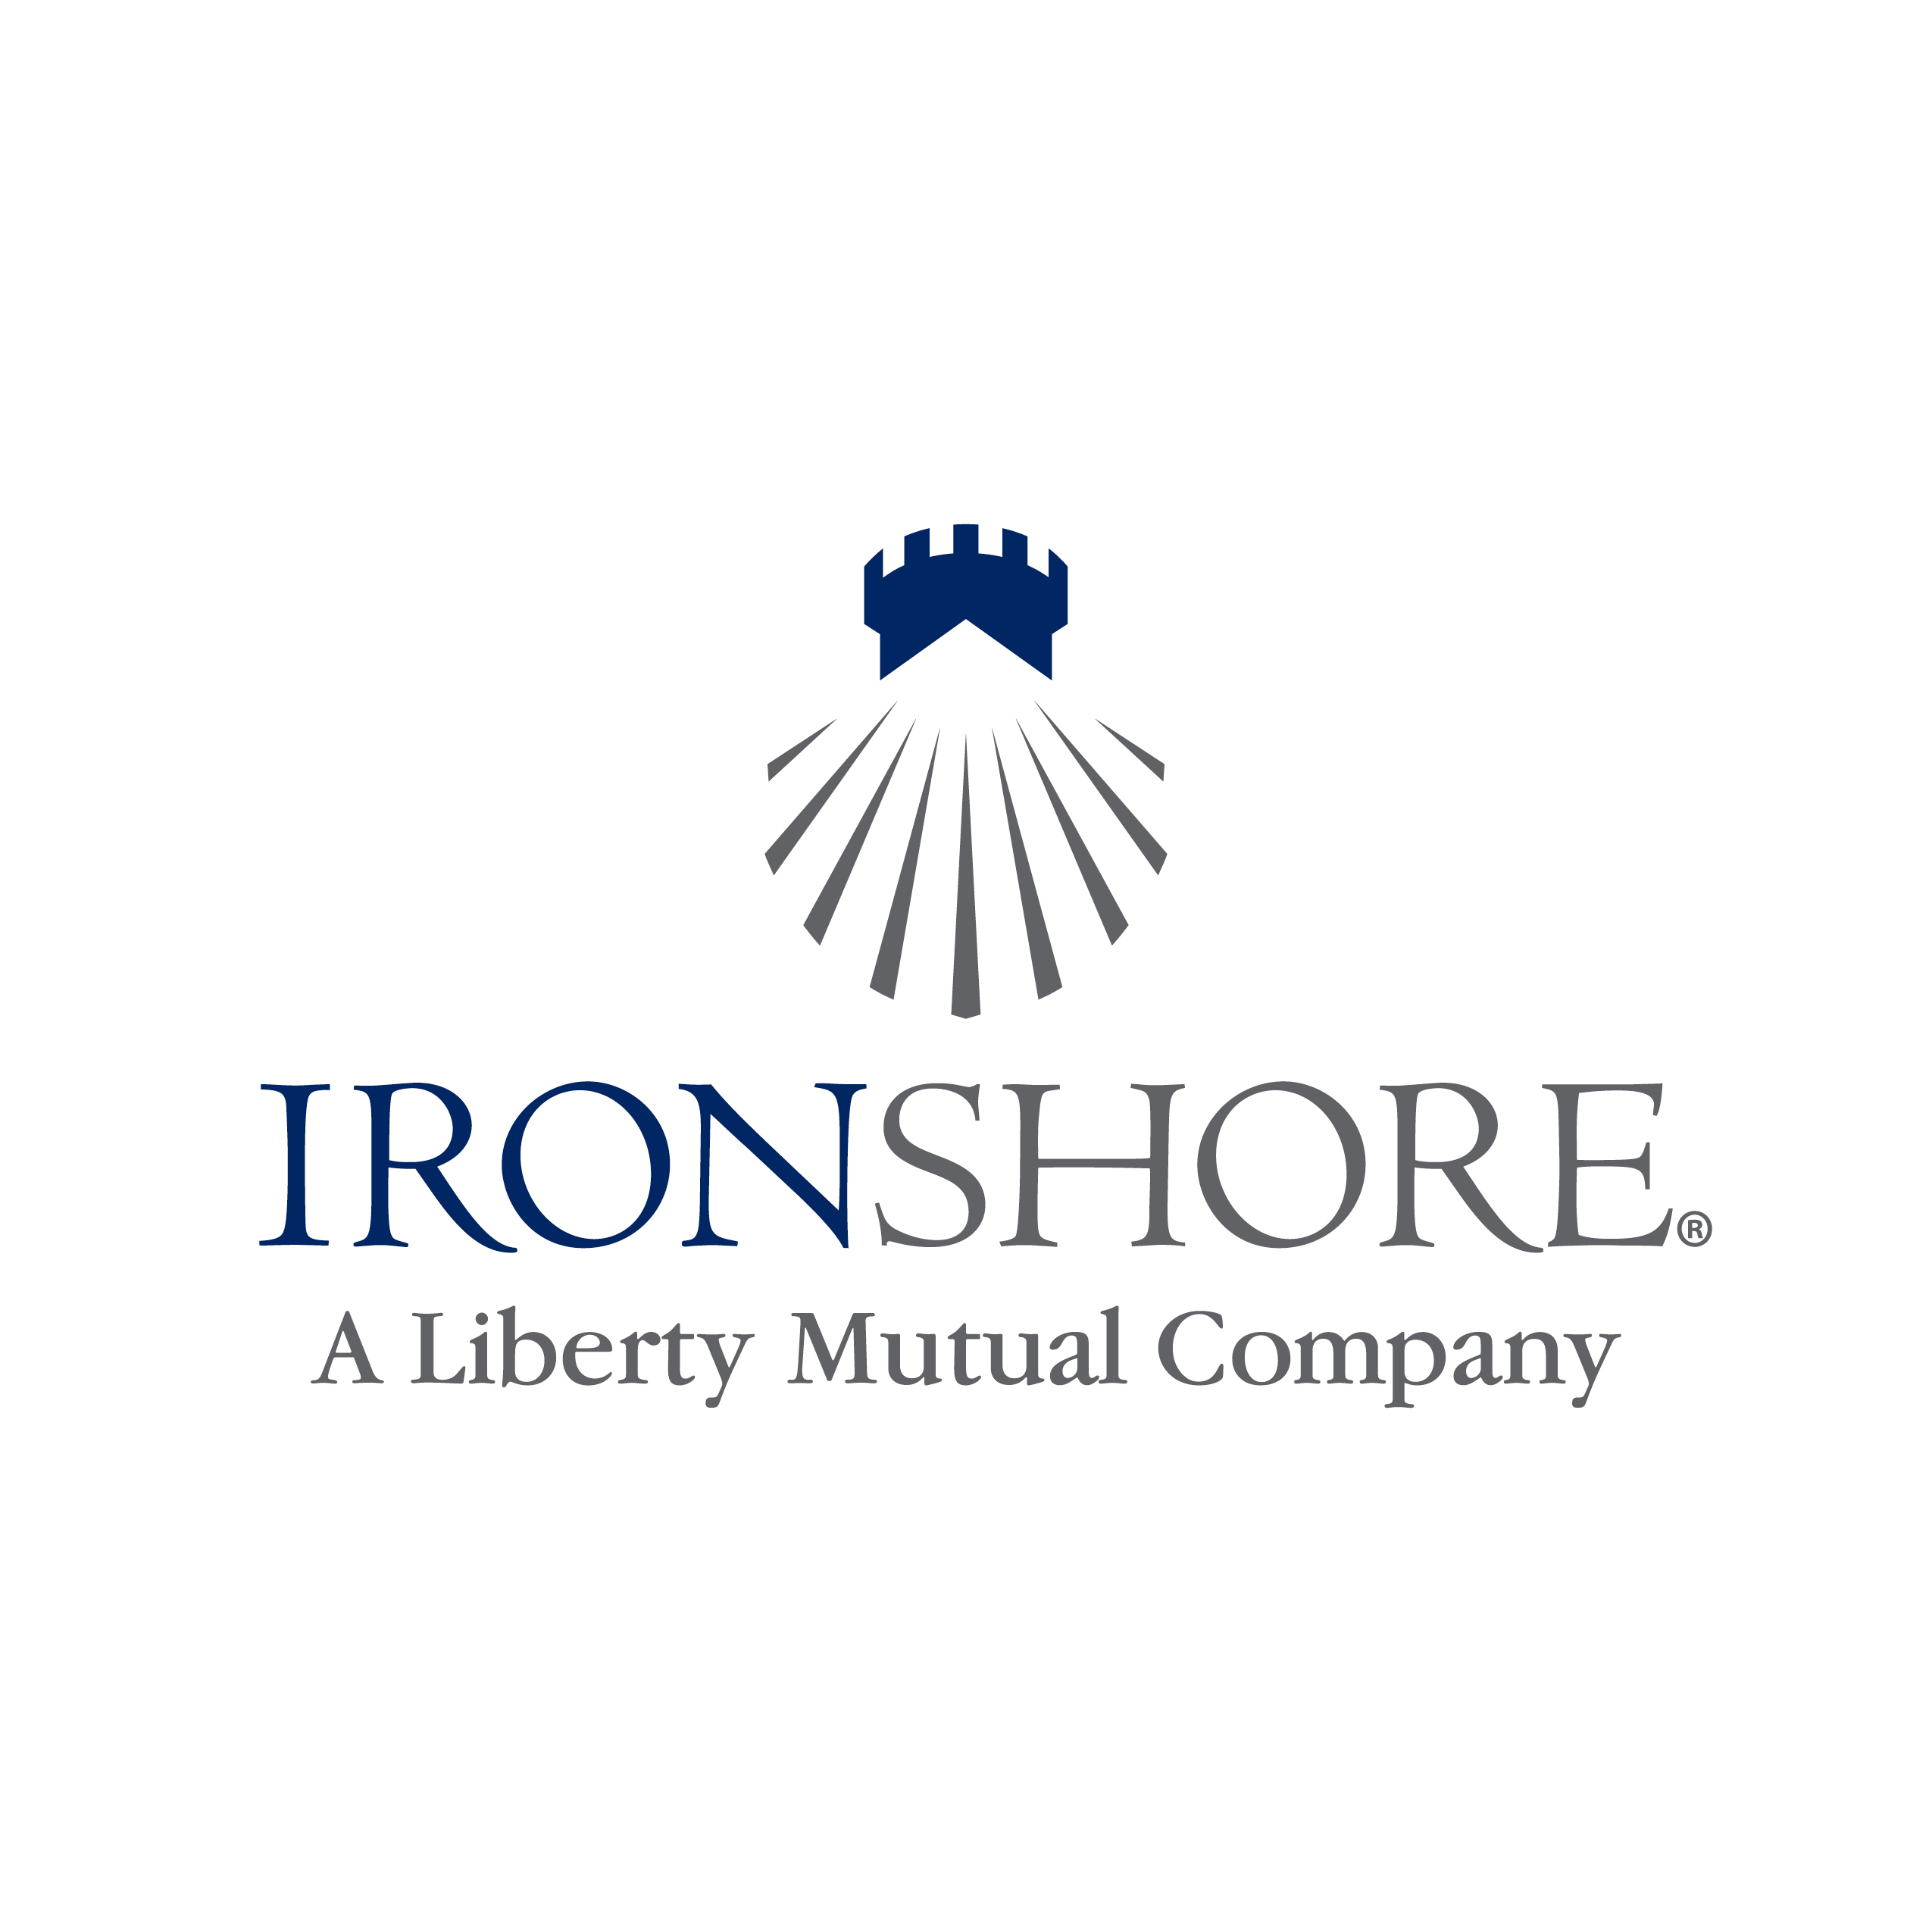 More about Ironshore